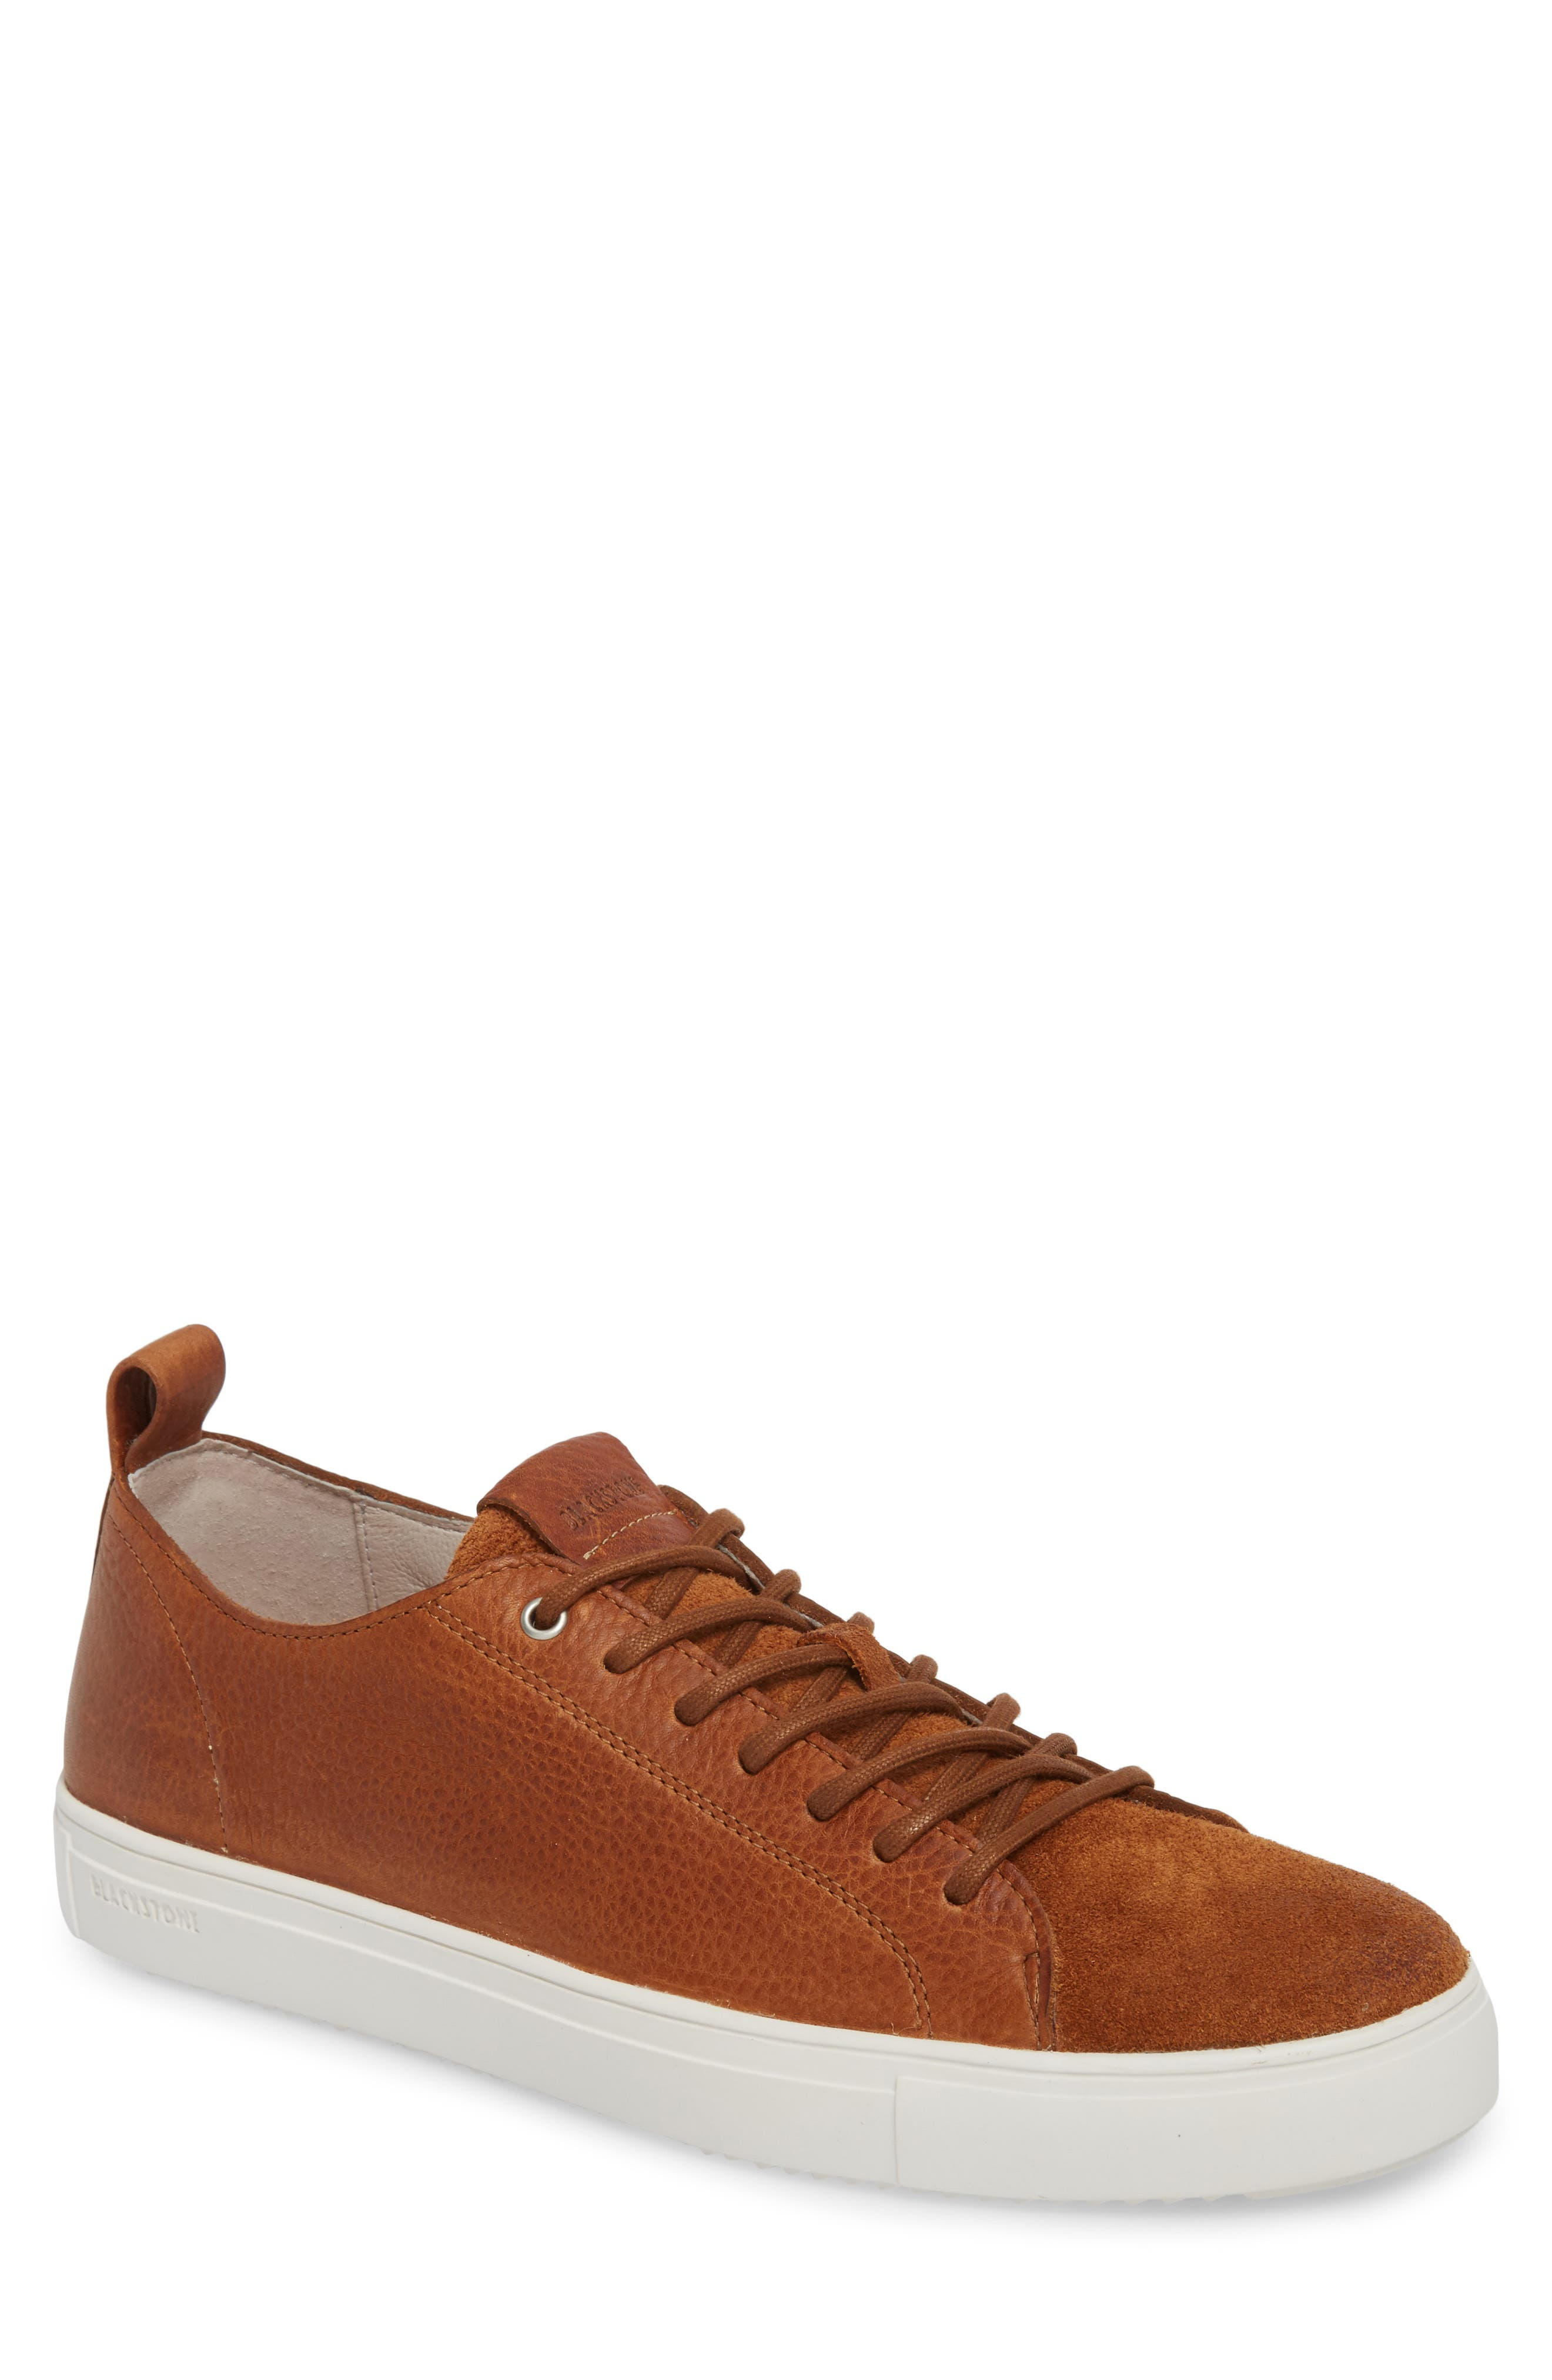 PM46 Low Top Sneaker,                         Main,                         color, Cuoio Leather